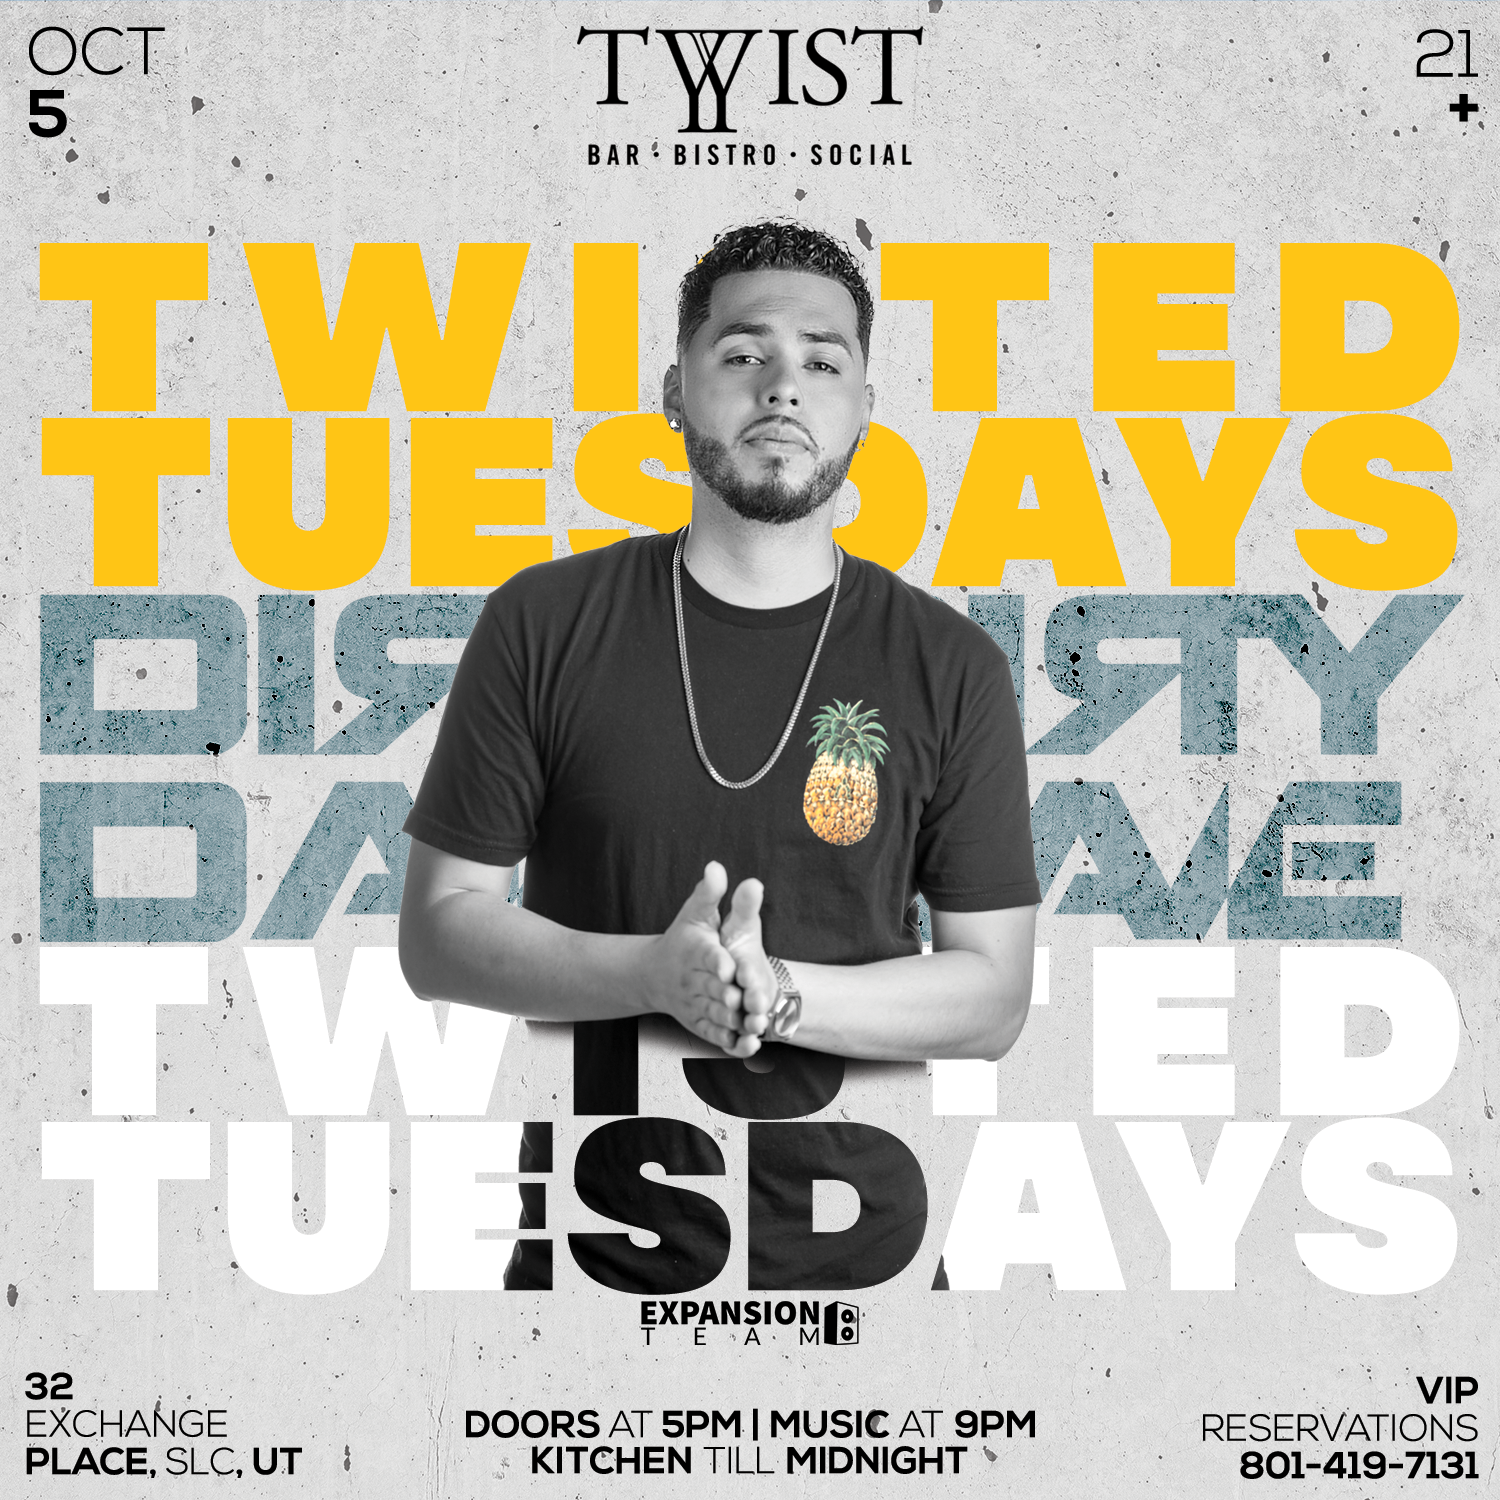 Event flyer for weekly Tuesday night held at Twist Bar & Bistro every Tuesday on 32 Exchance Place in Downtown Salt Lake City featuring live DJs, sports, and drink and food spcecials.